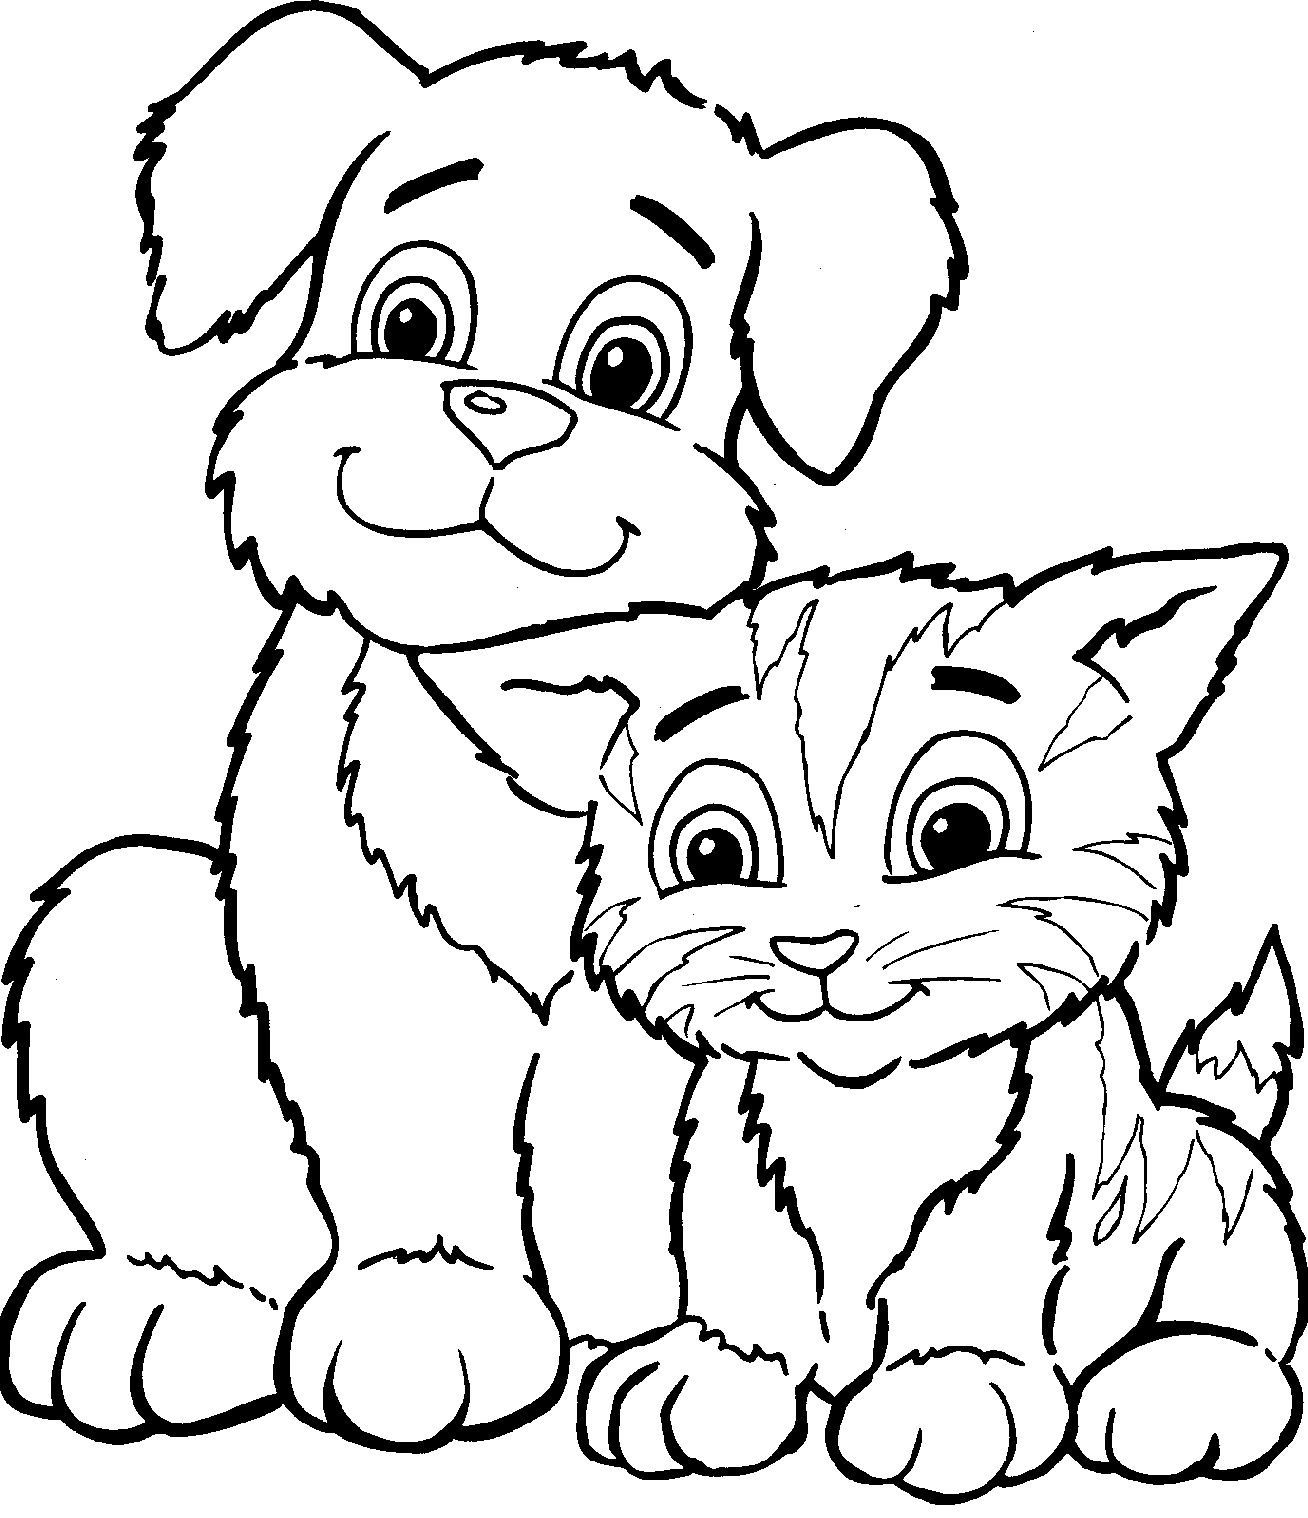 puppies and kittens cute coloring pages - Coloring Pages Kittens Puppies